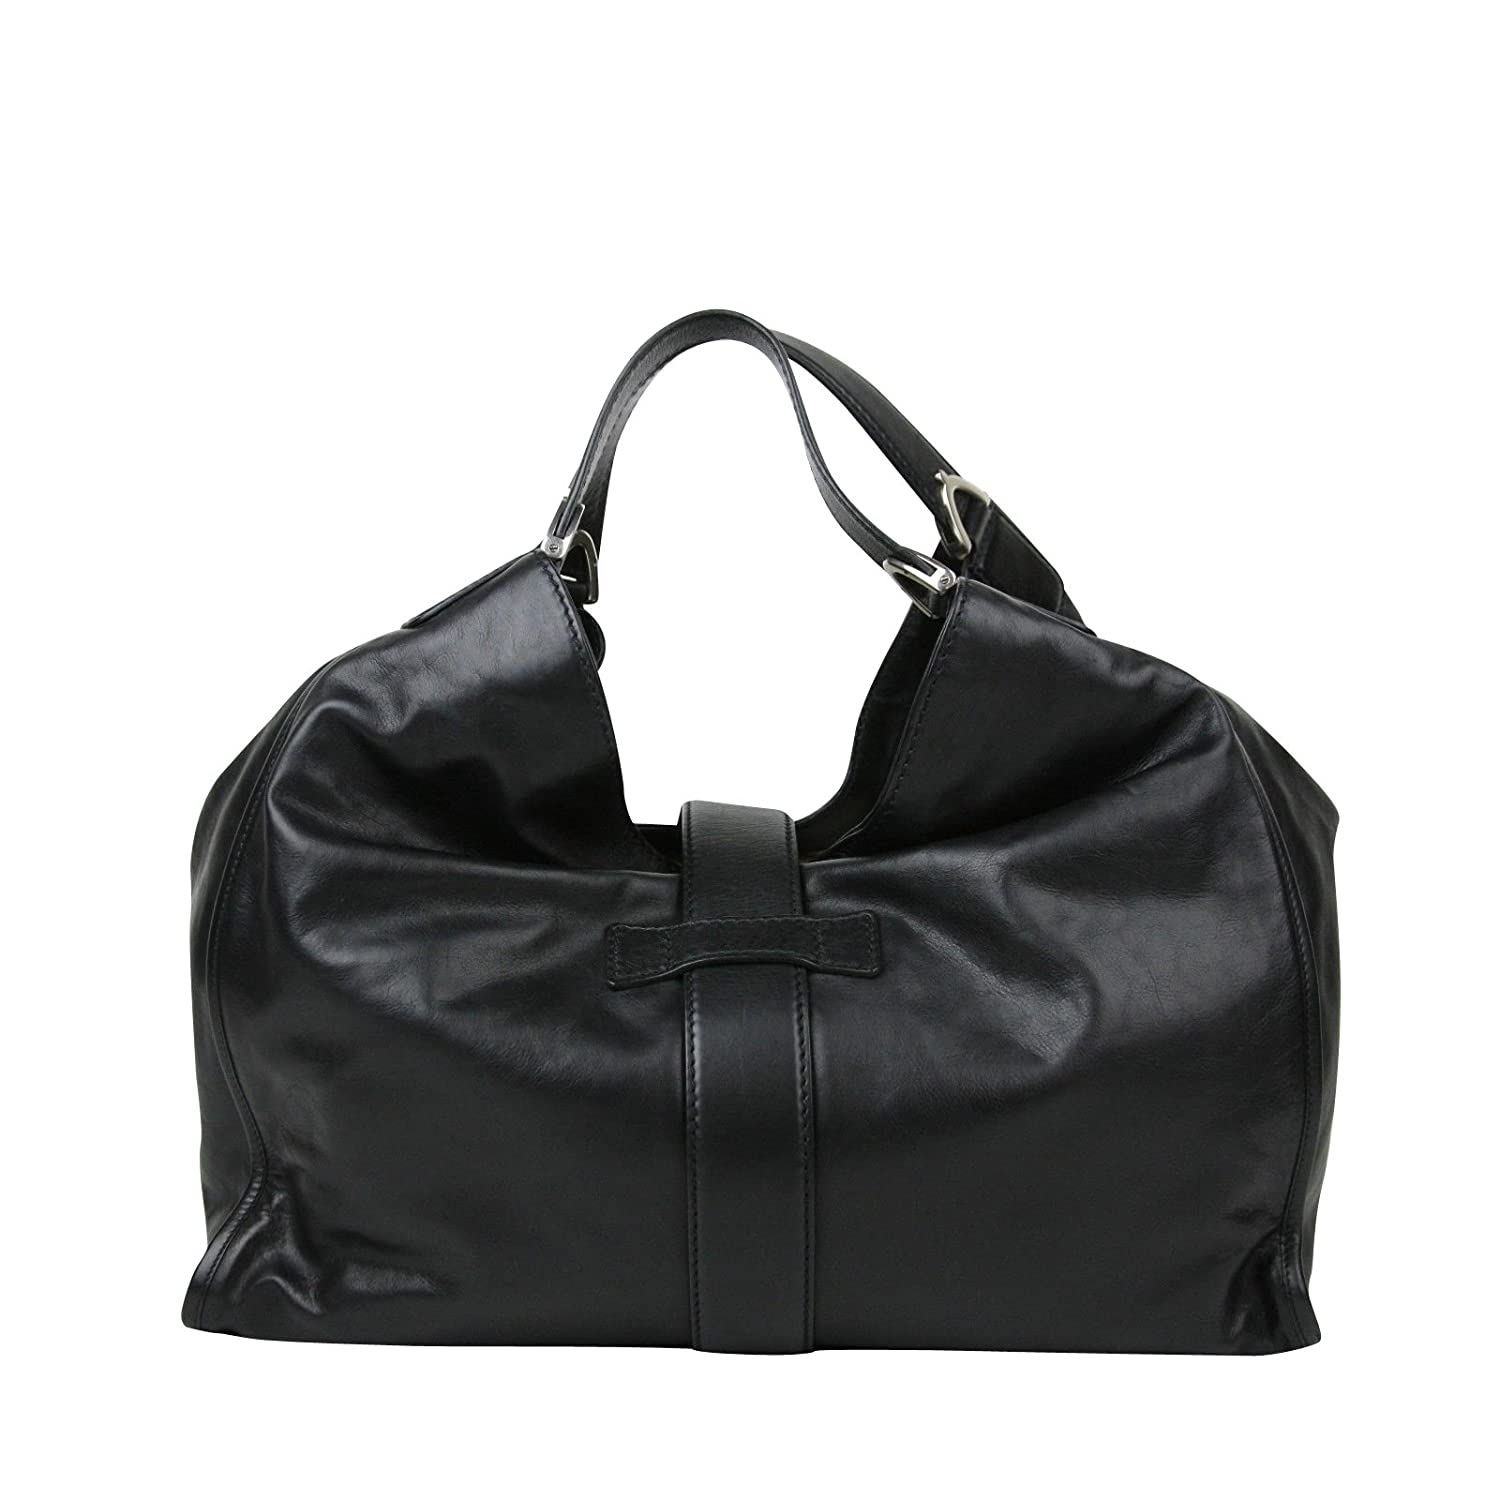 d20dc2b76 Amazon.com: Gucci Stirrup Black Calf Leather Large Hobo Bag Handbag 296855  1000: Shoes